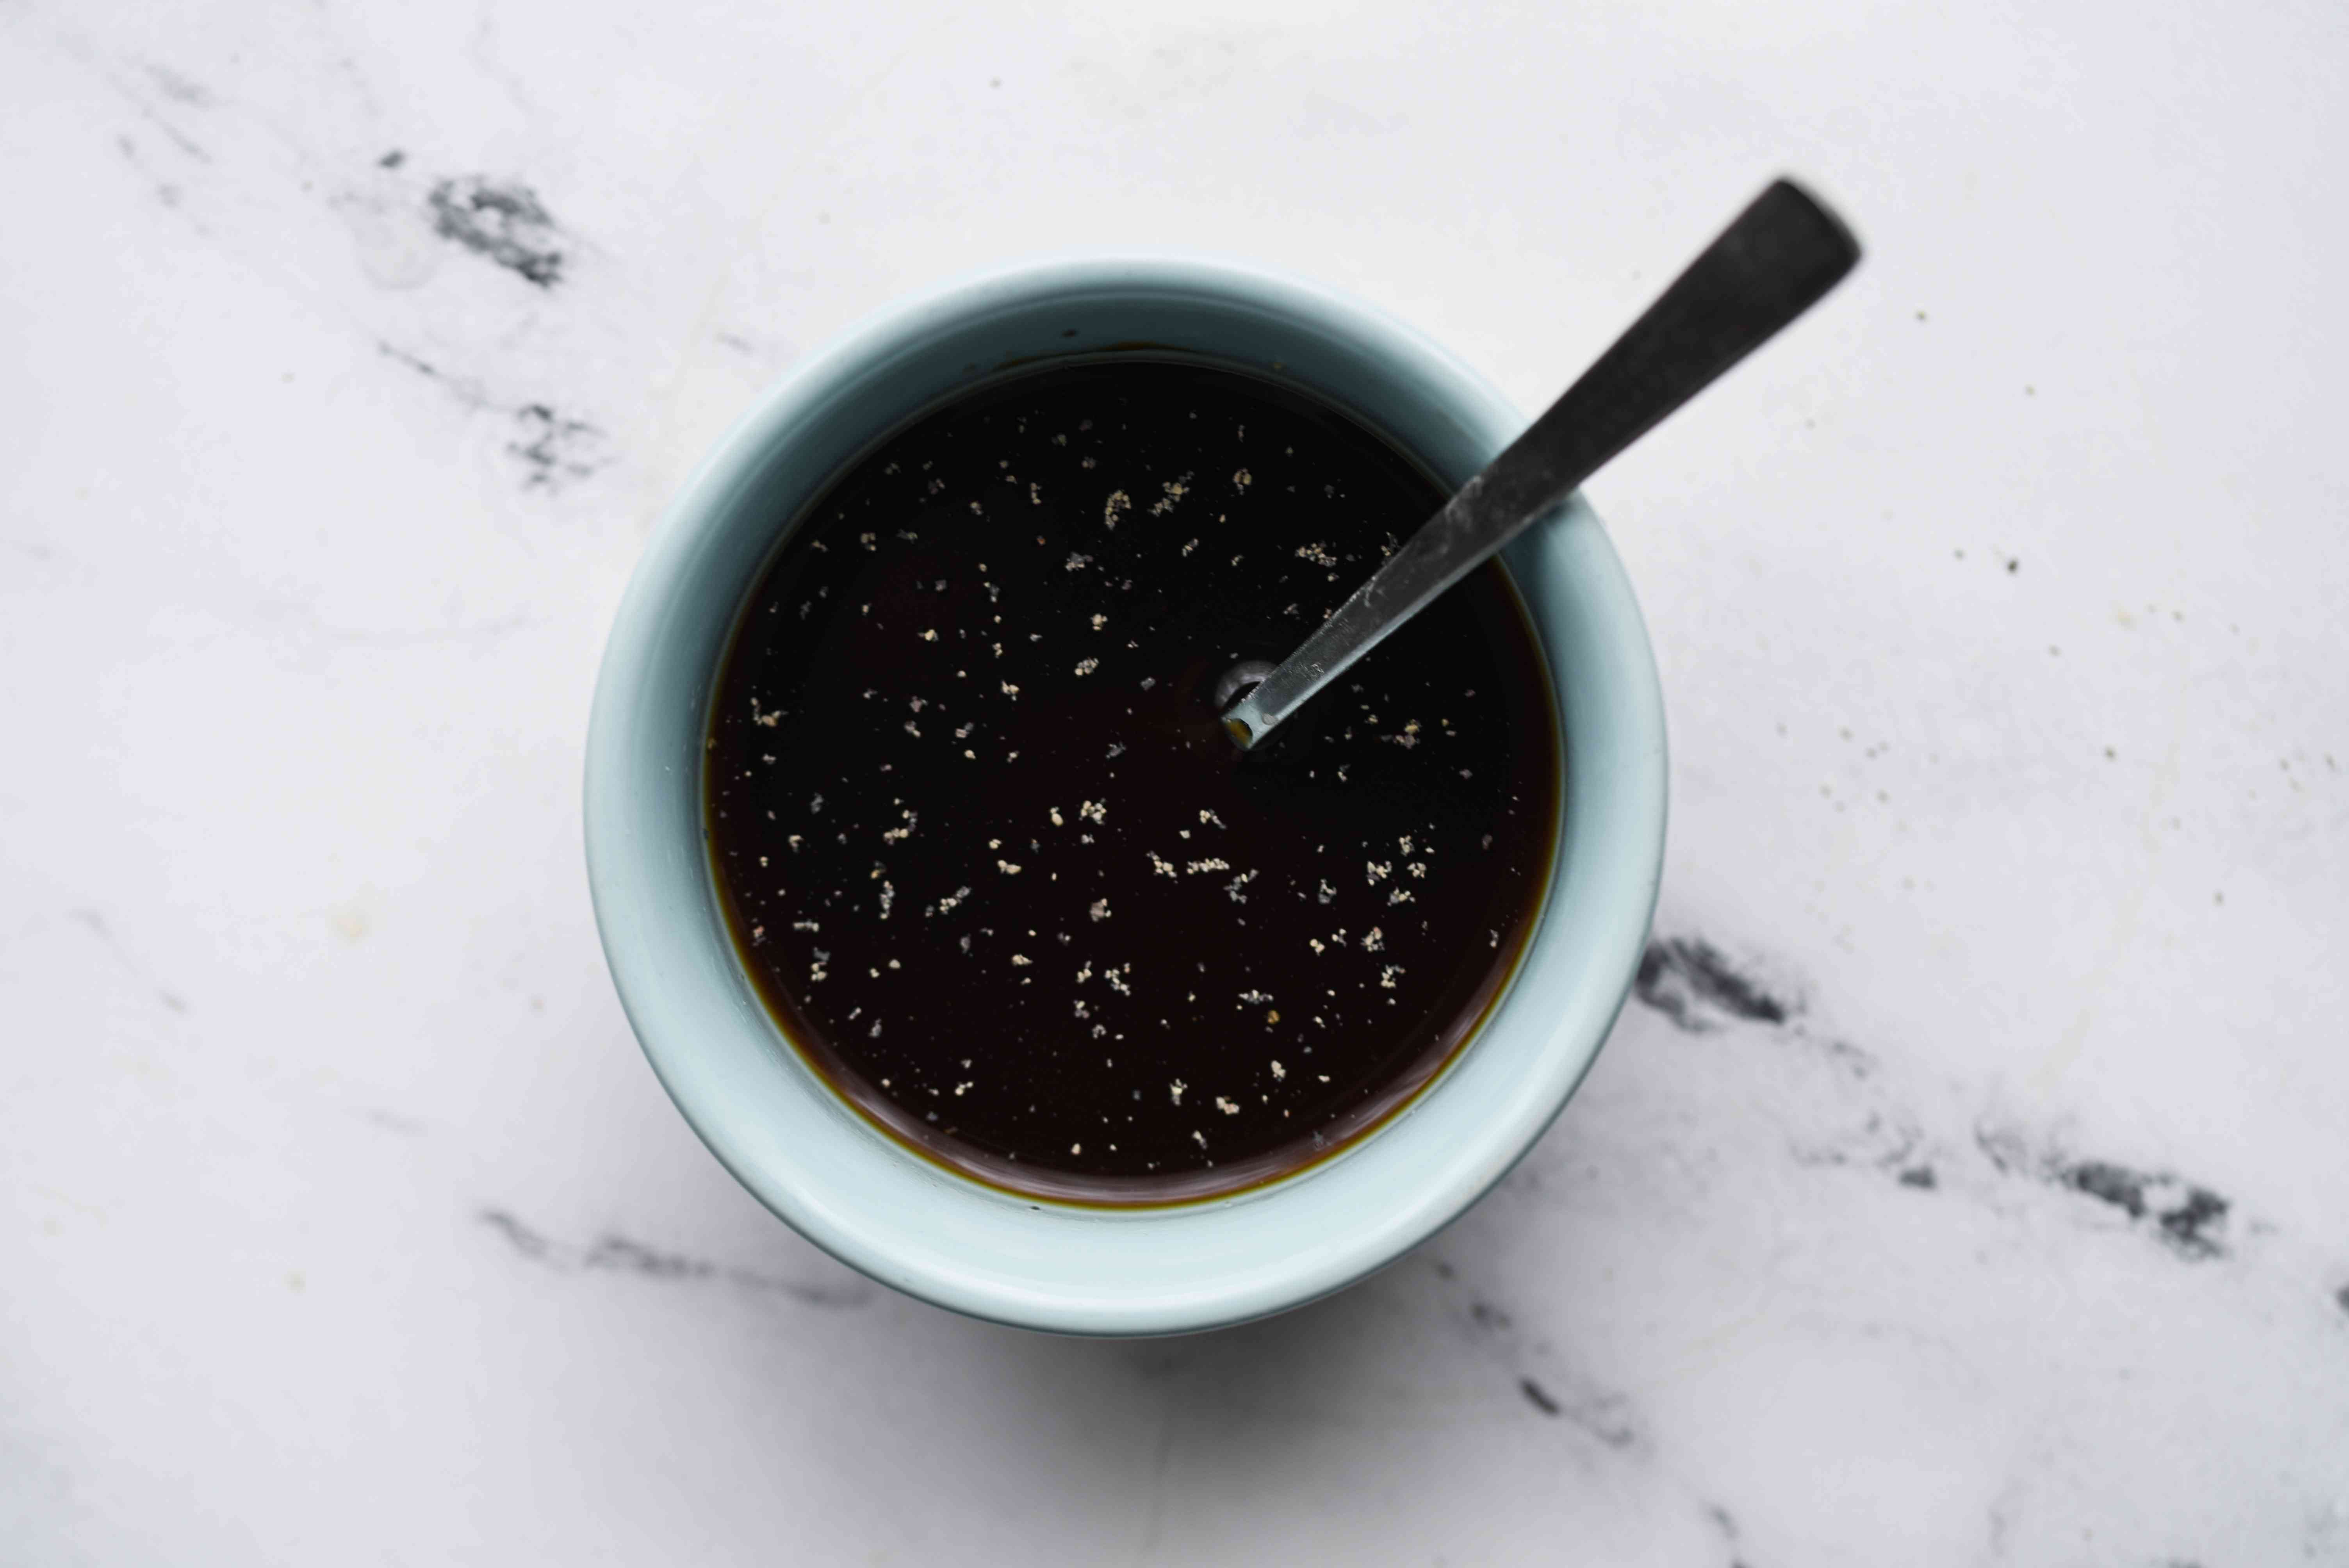 ombine the chicken broth or water, oyster sauce, rice wine or sherry, sugar, and black pepper in a bowl